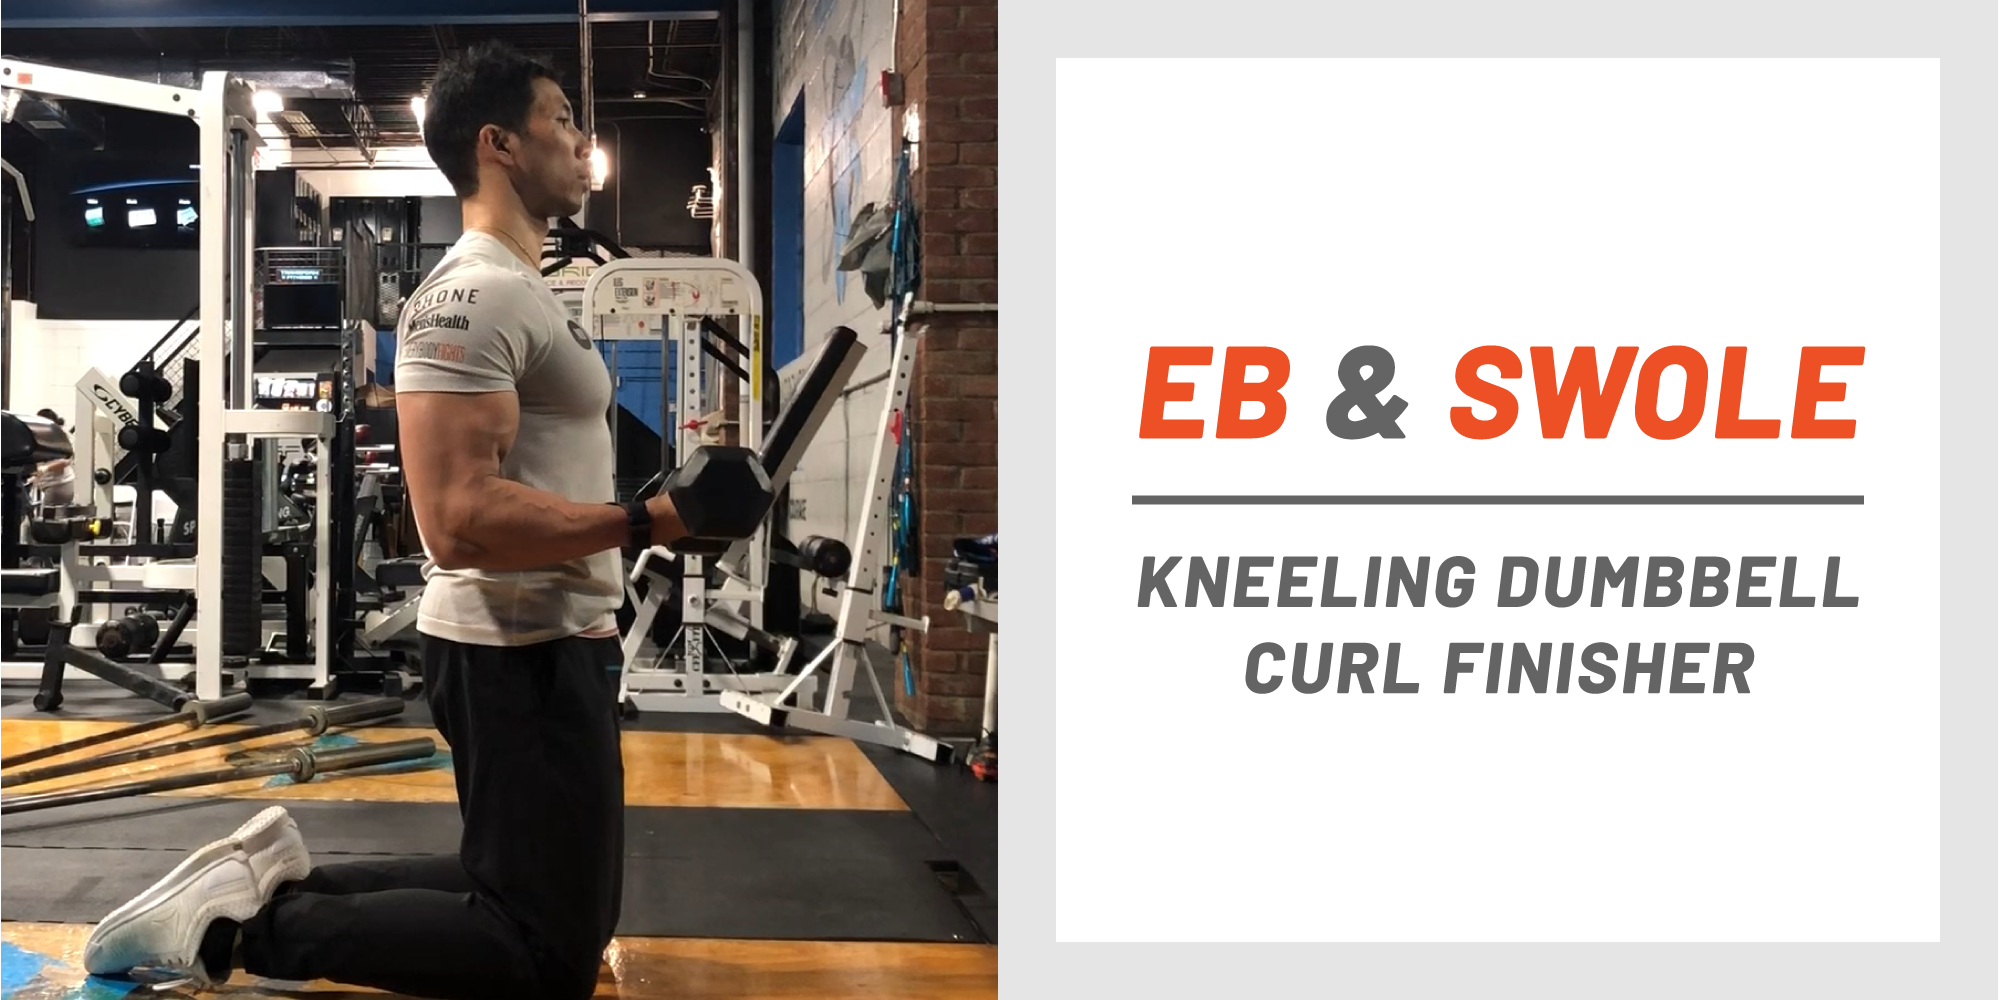 This Killer Biceps Finisher Will Bring You to Your Knees